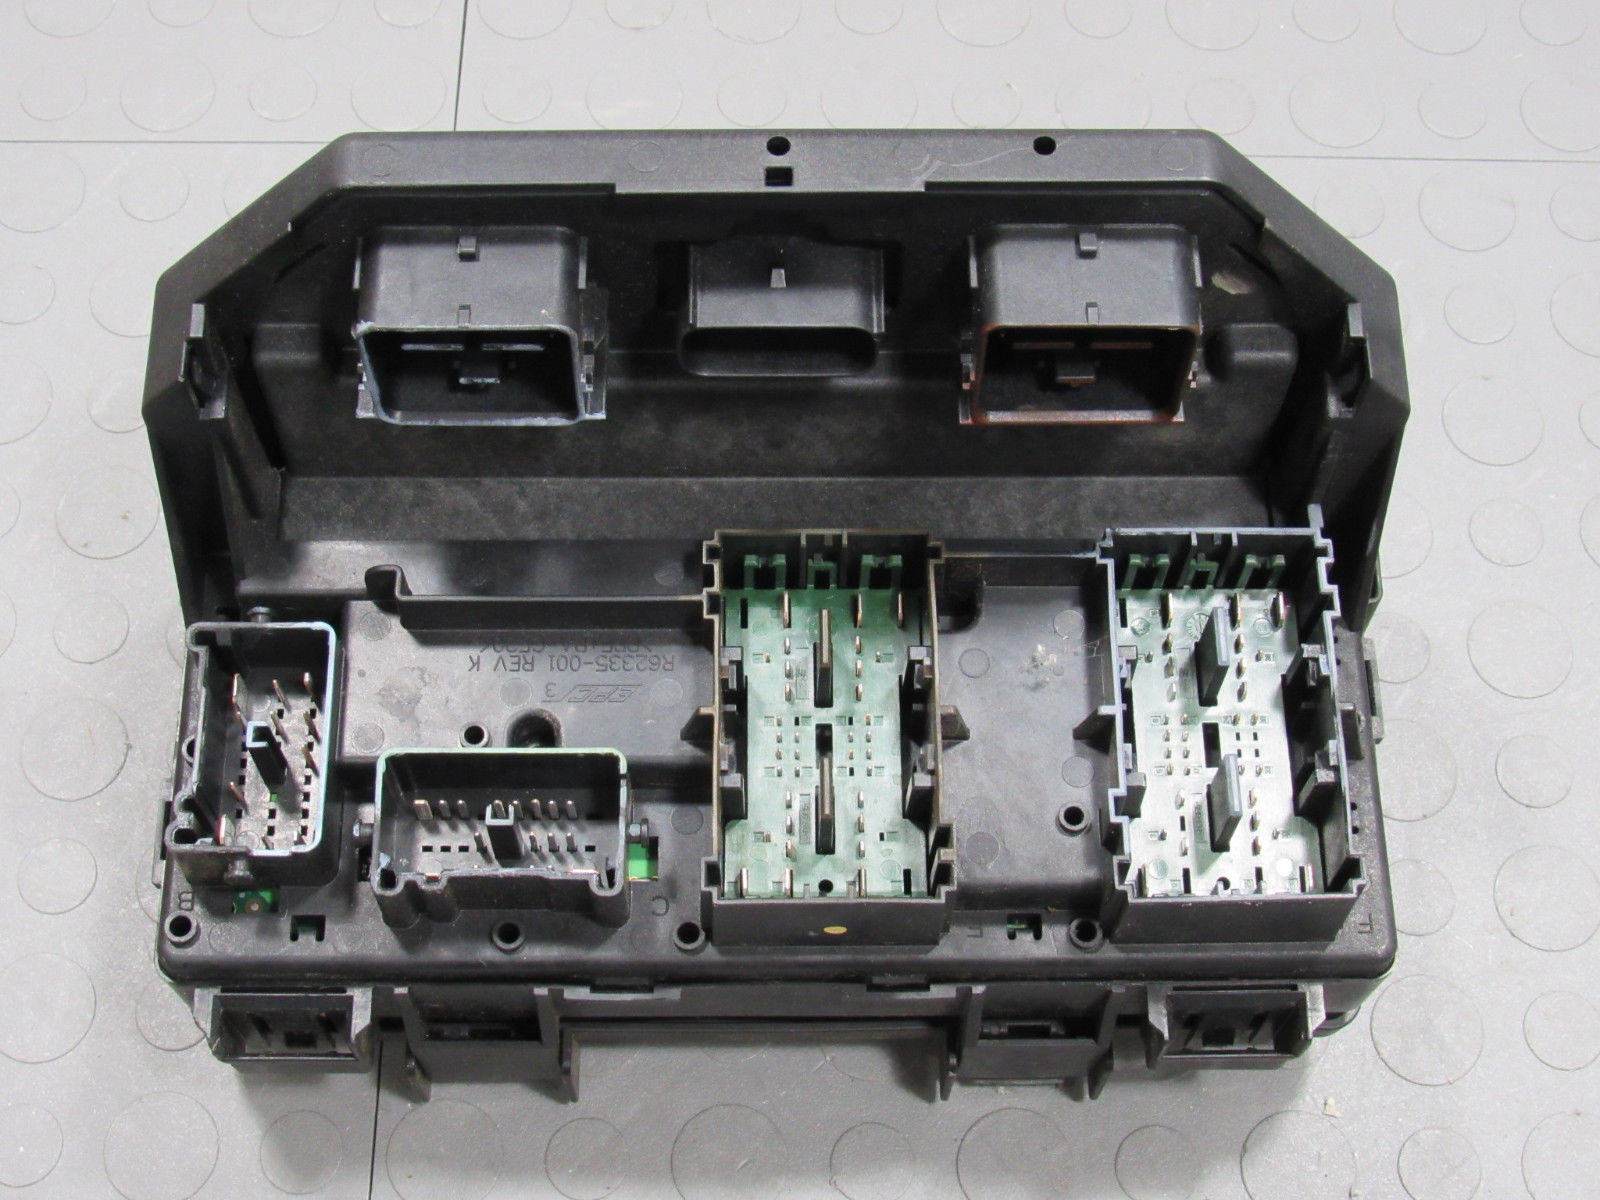 2009 jeep wrangler fuse box diagram    fuse       box    for    jeep    liberty wiring library     fuse       box    for    jeep    liberty wiring library